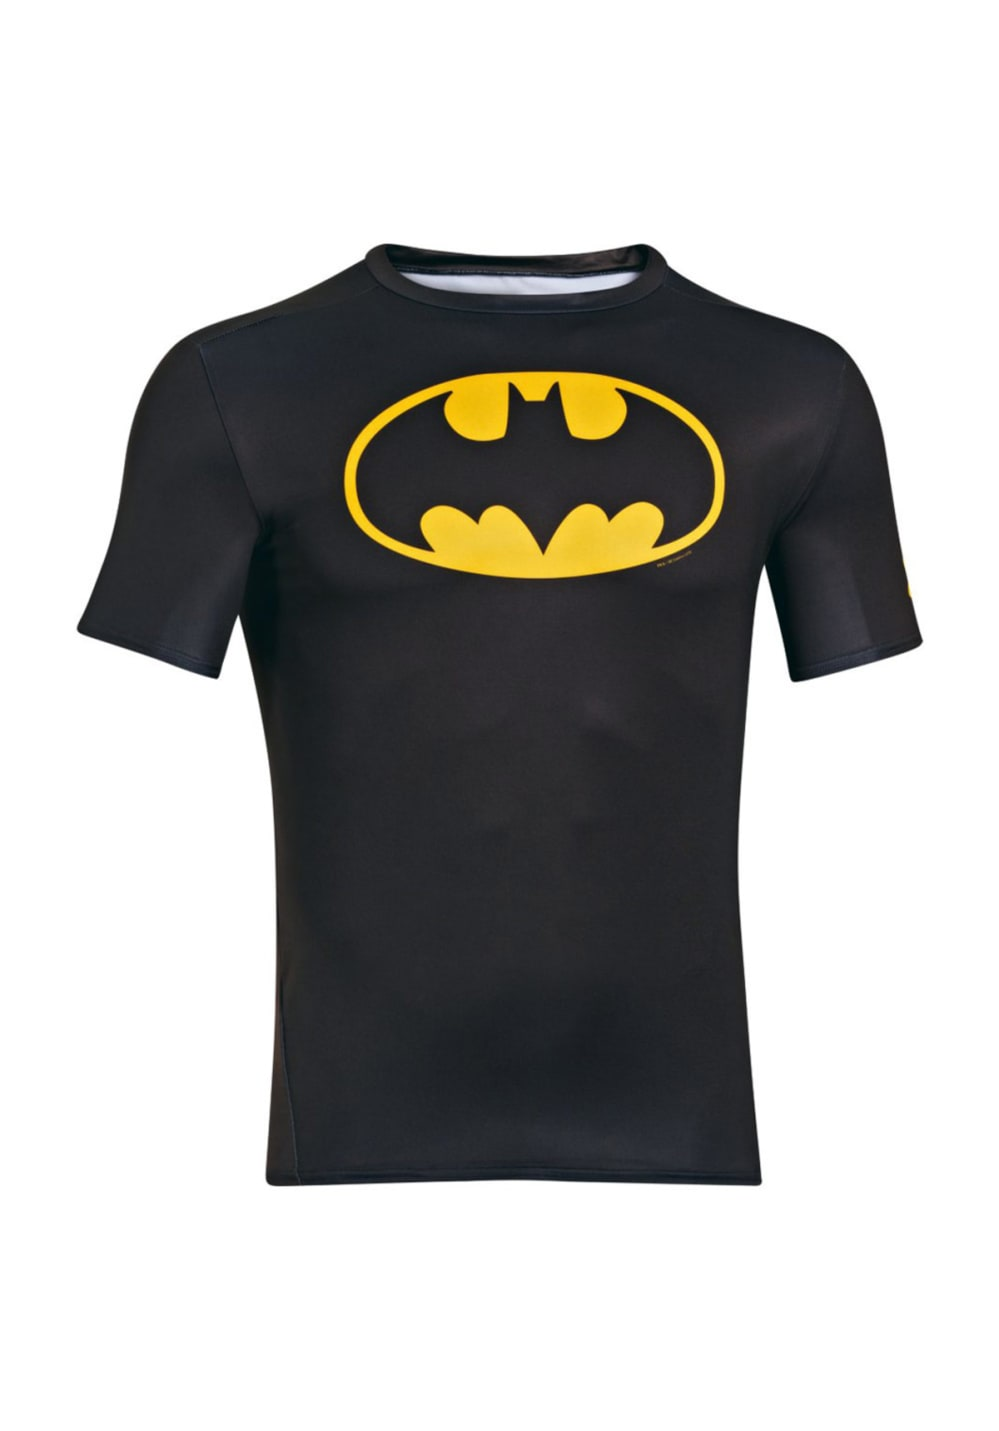 Under Armour Alter Ego Batman Compresion Shirt Hommes Article compression